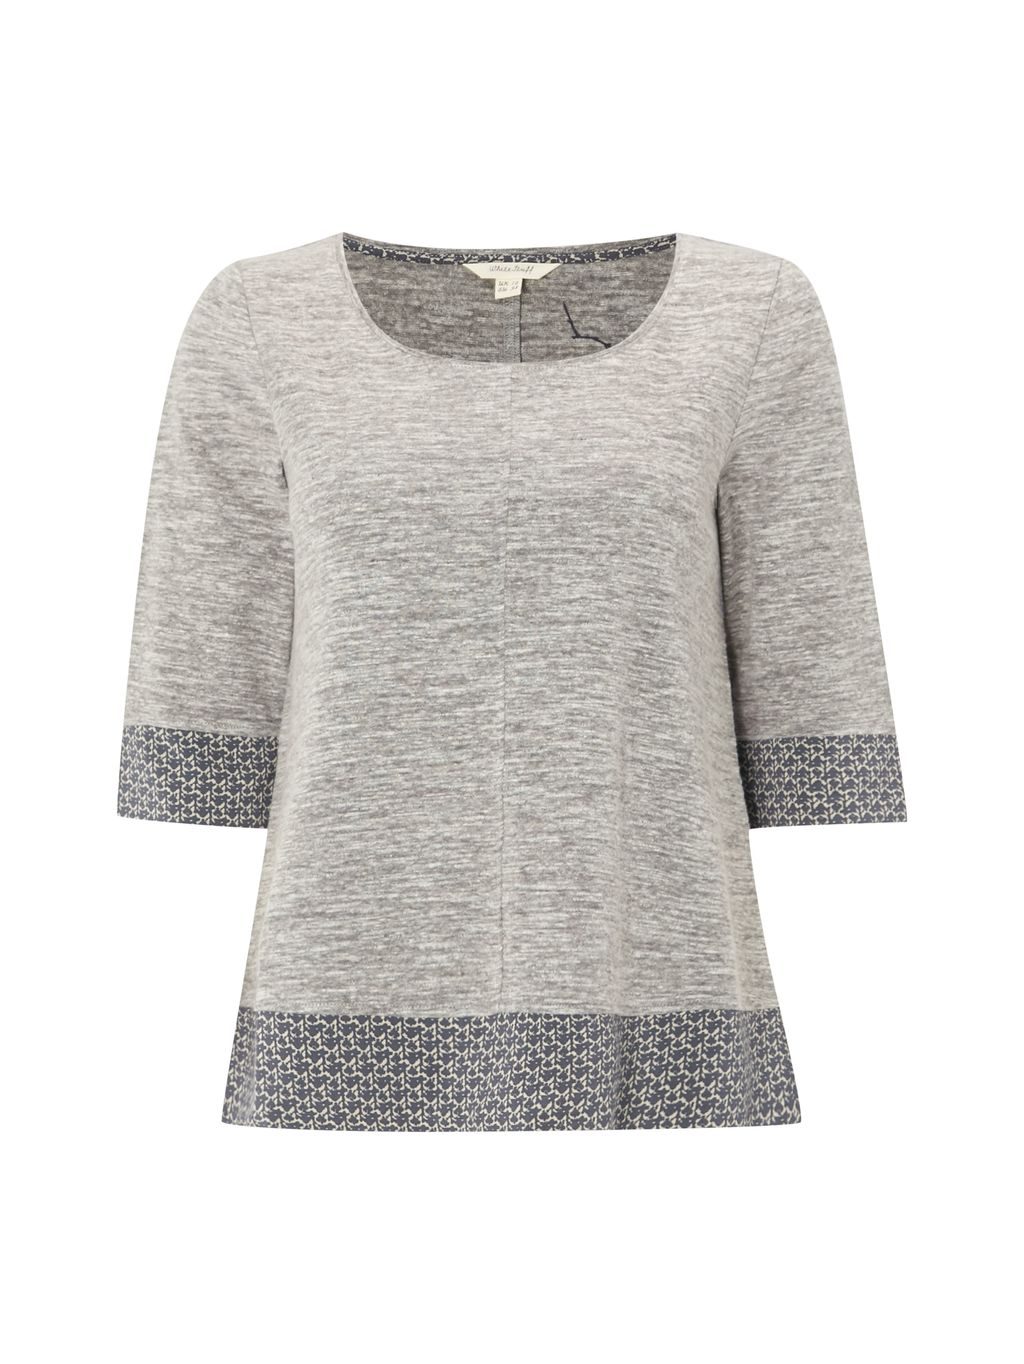 Suzi Jersey Tee, Grey - neckline: round neck; style: t-shirt; predominant colour: light grey; occasions: casual; length: standard; fibres: viscose/rayon - 100%; fit: body skimming; sleeve length: 3/4 length; sleeve style: standard; pattern type: fabric; pattern size: light/subtle; pattern: patterned/print; texture group: jersey - stretchy/drapey; season: s/s 2016; wardrobe: highlight